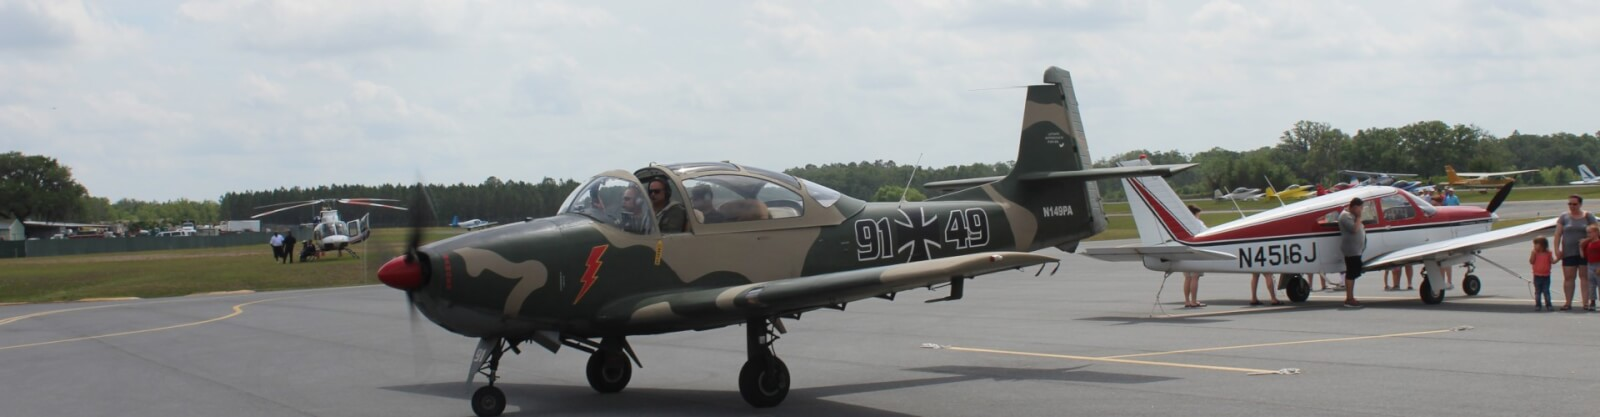 Airplane on tarmac at Wings Over Suwannee